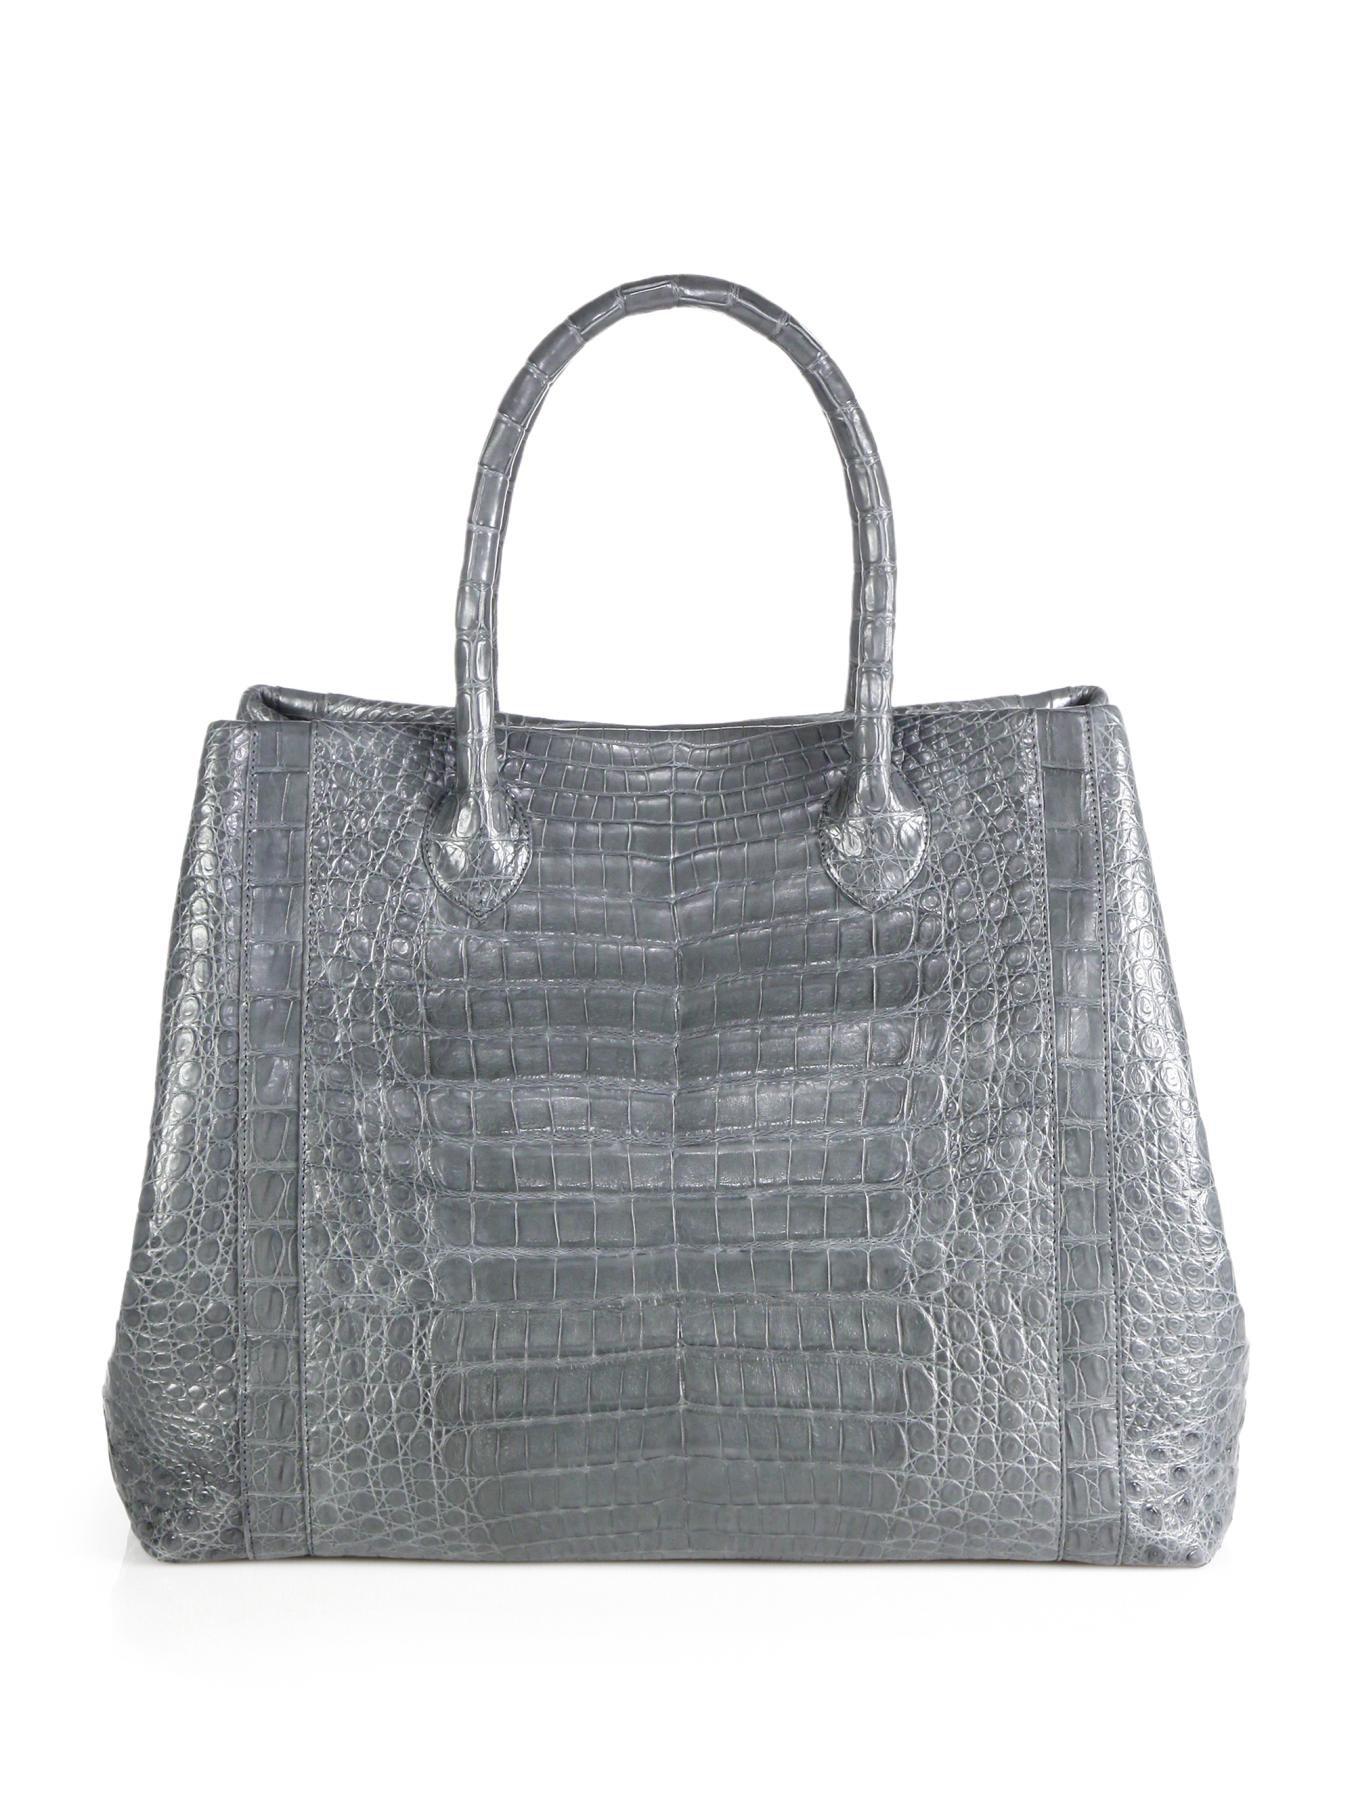 Nancy gonzalez large convertible crocodile tote in gray for Nancy gonzalez crocodile tote